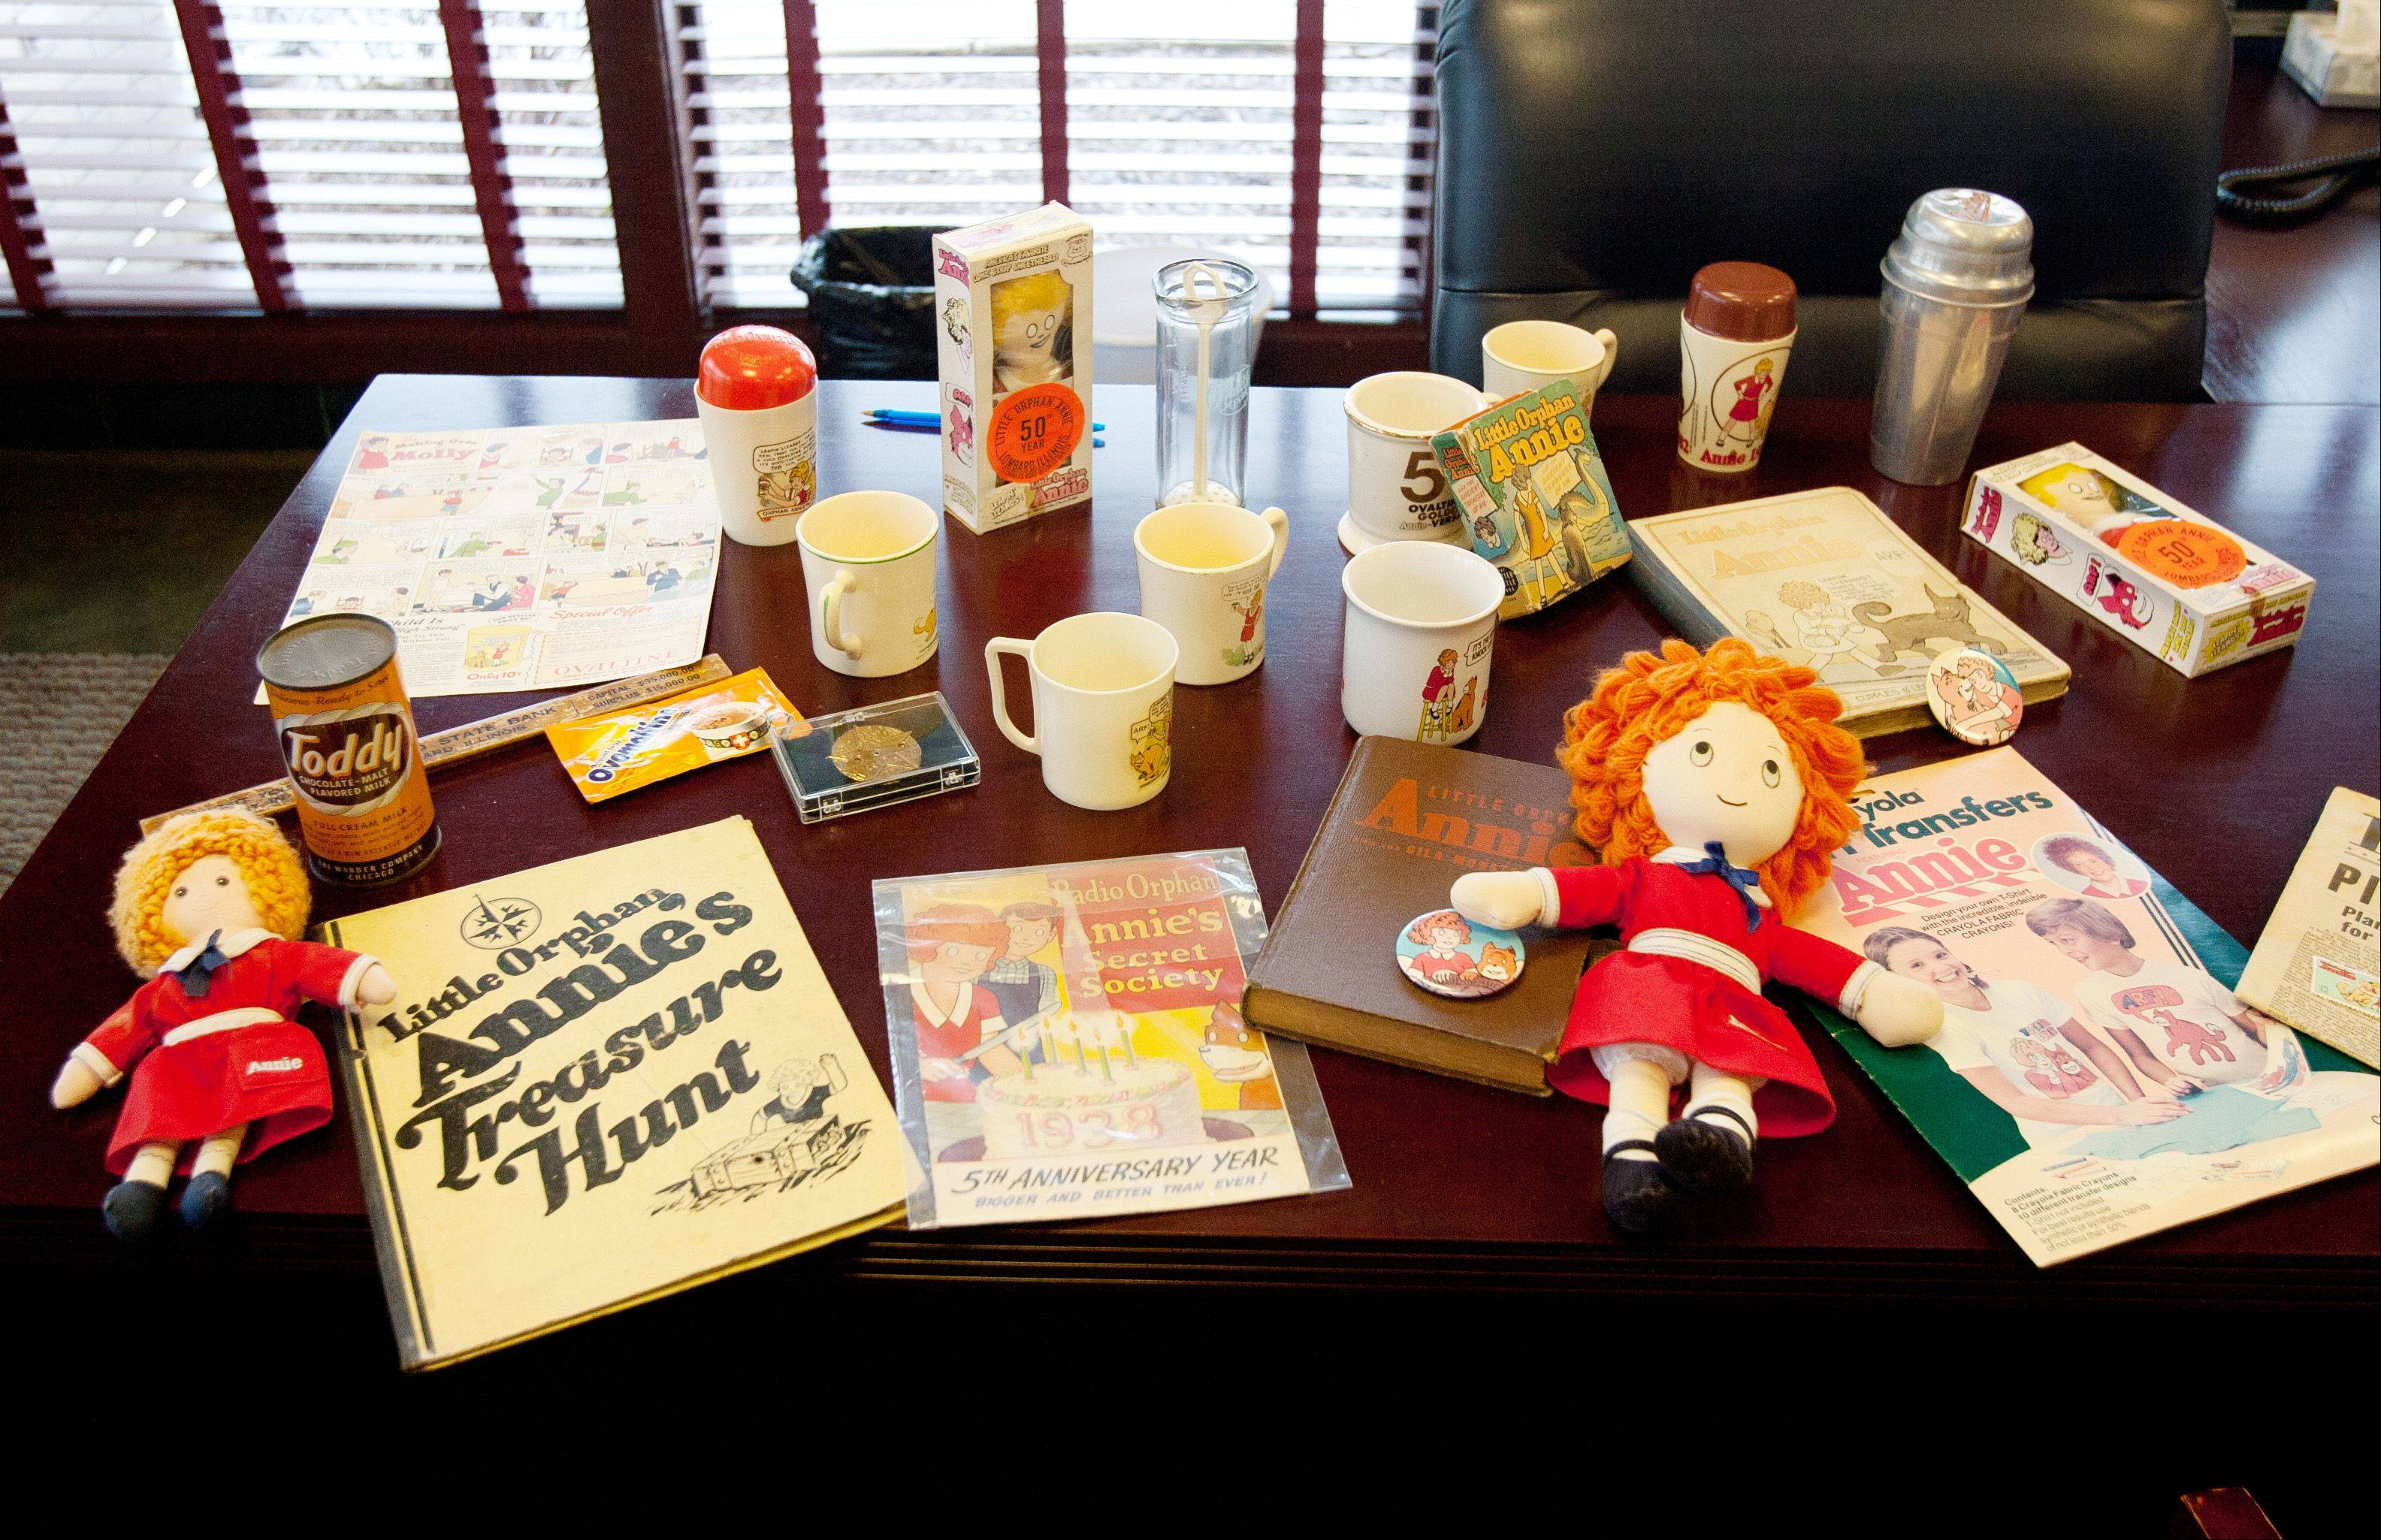 Cartoons, dolls, coffee mugs and toys are among the Little Orphan Annie items the downtown Lombard branch of BMO Harris Bank donated to the Lombard Historical Society. The character was created by cartoonist Harold Gray while he was living in Lombard and working for the Chicago Tribune.